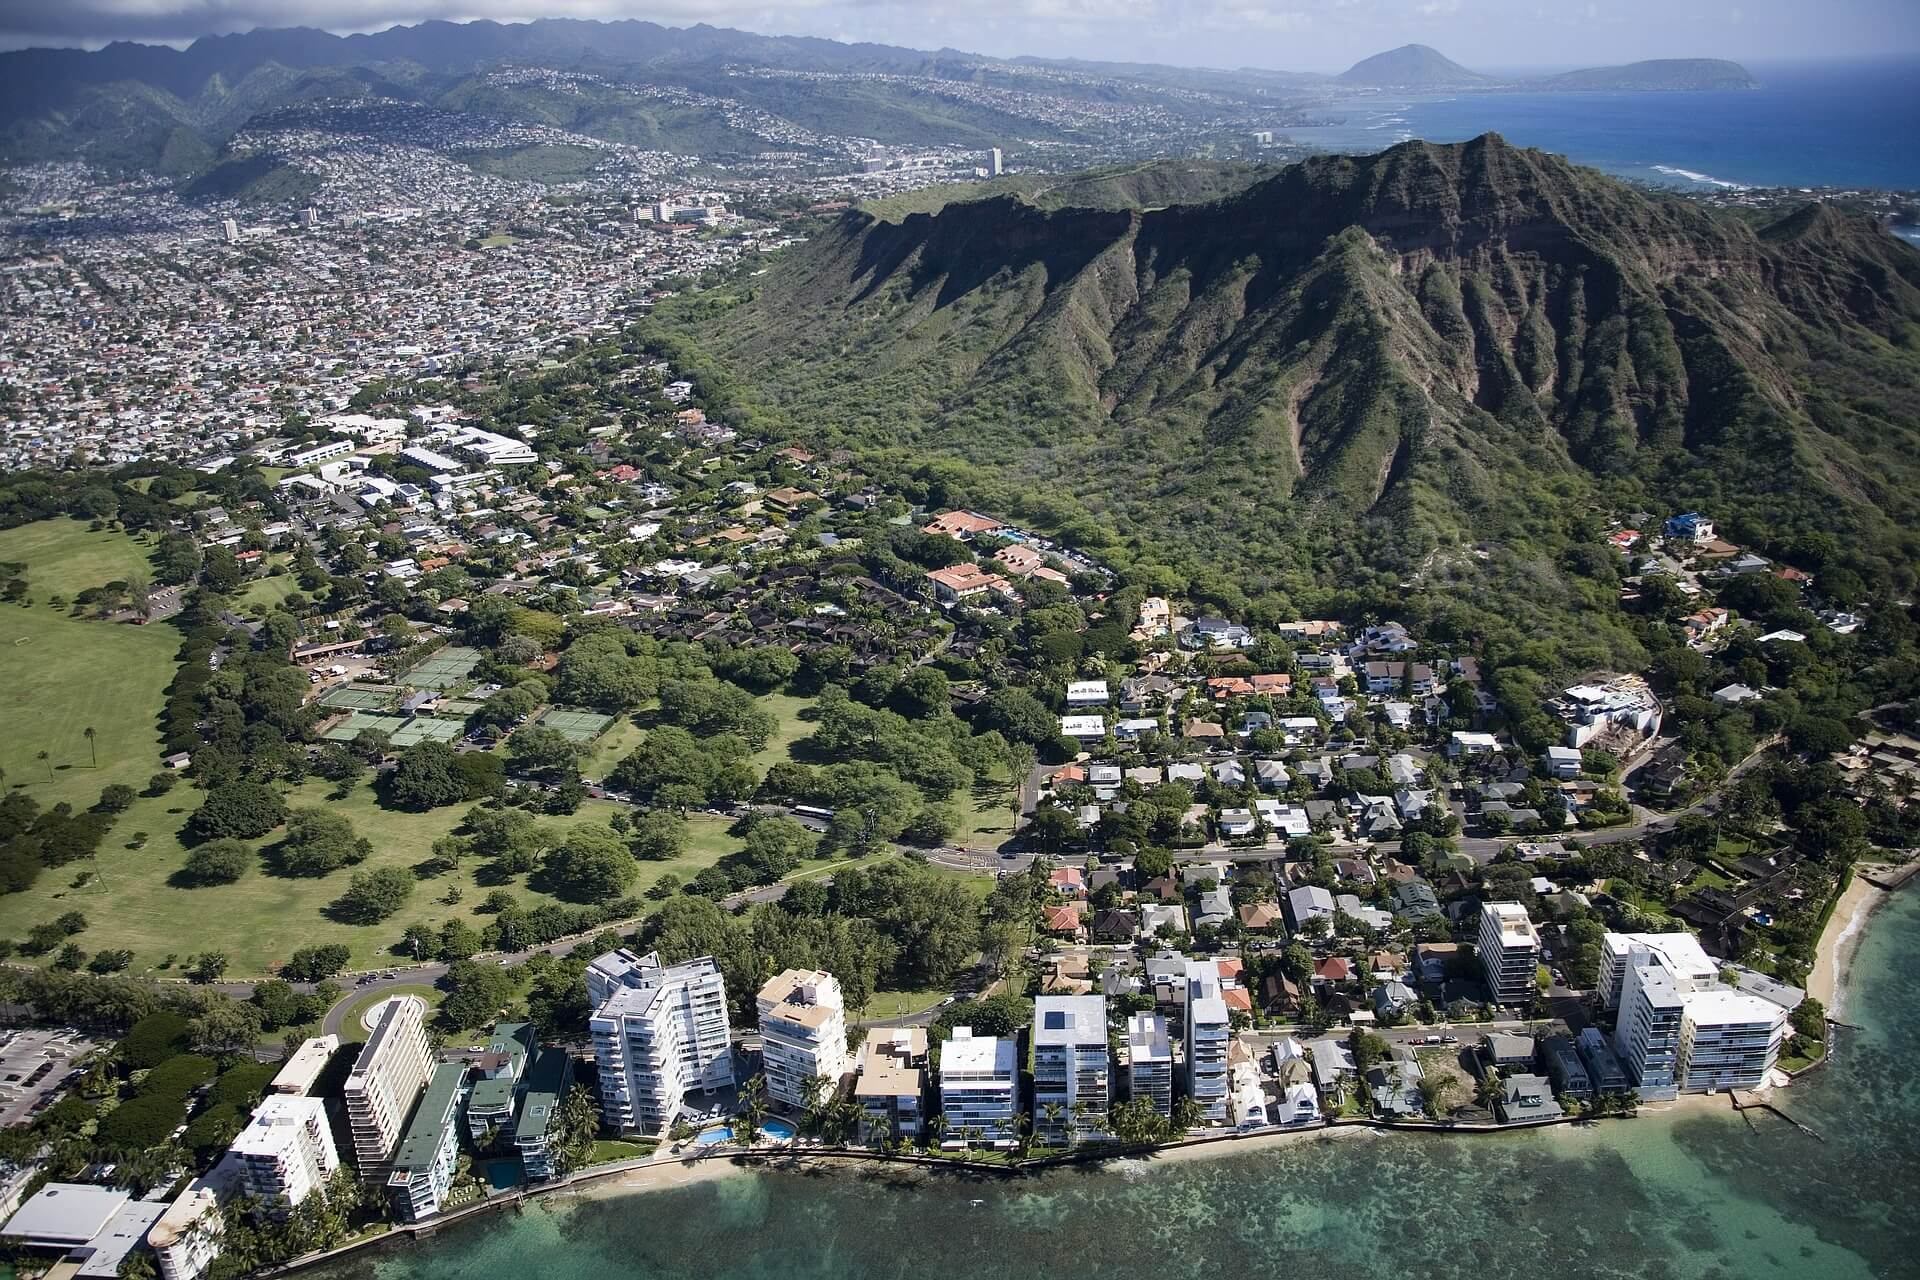 Doing one of the best things to do in Waikiki - koko head